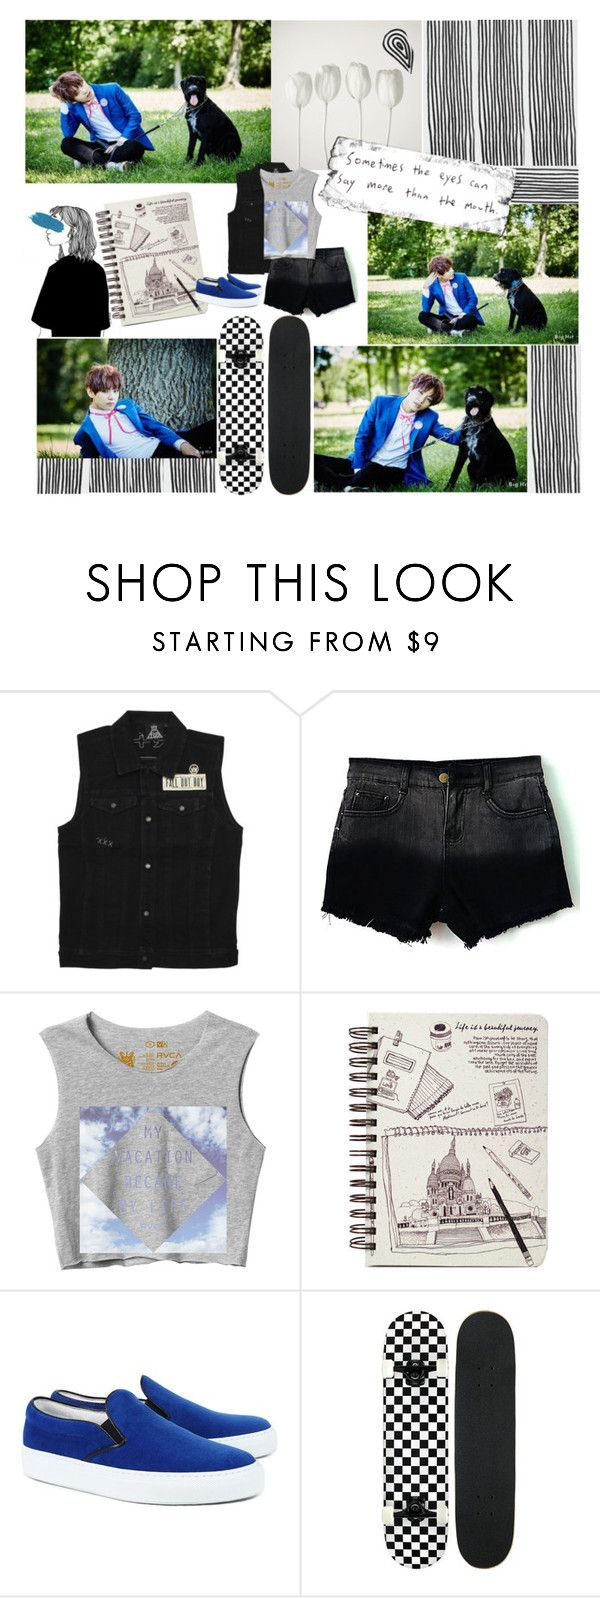 """""""V BTS Now 3"""" by emma-mae98 ❤ liked on Polyvore featuring KEEP ME, RVCA and Amb Ambassadors of minimalism"""